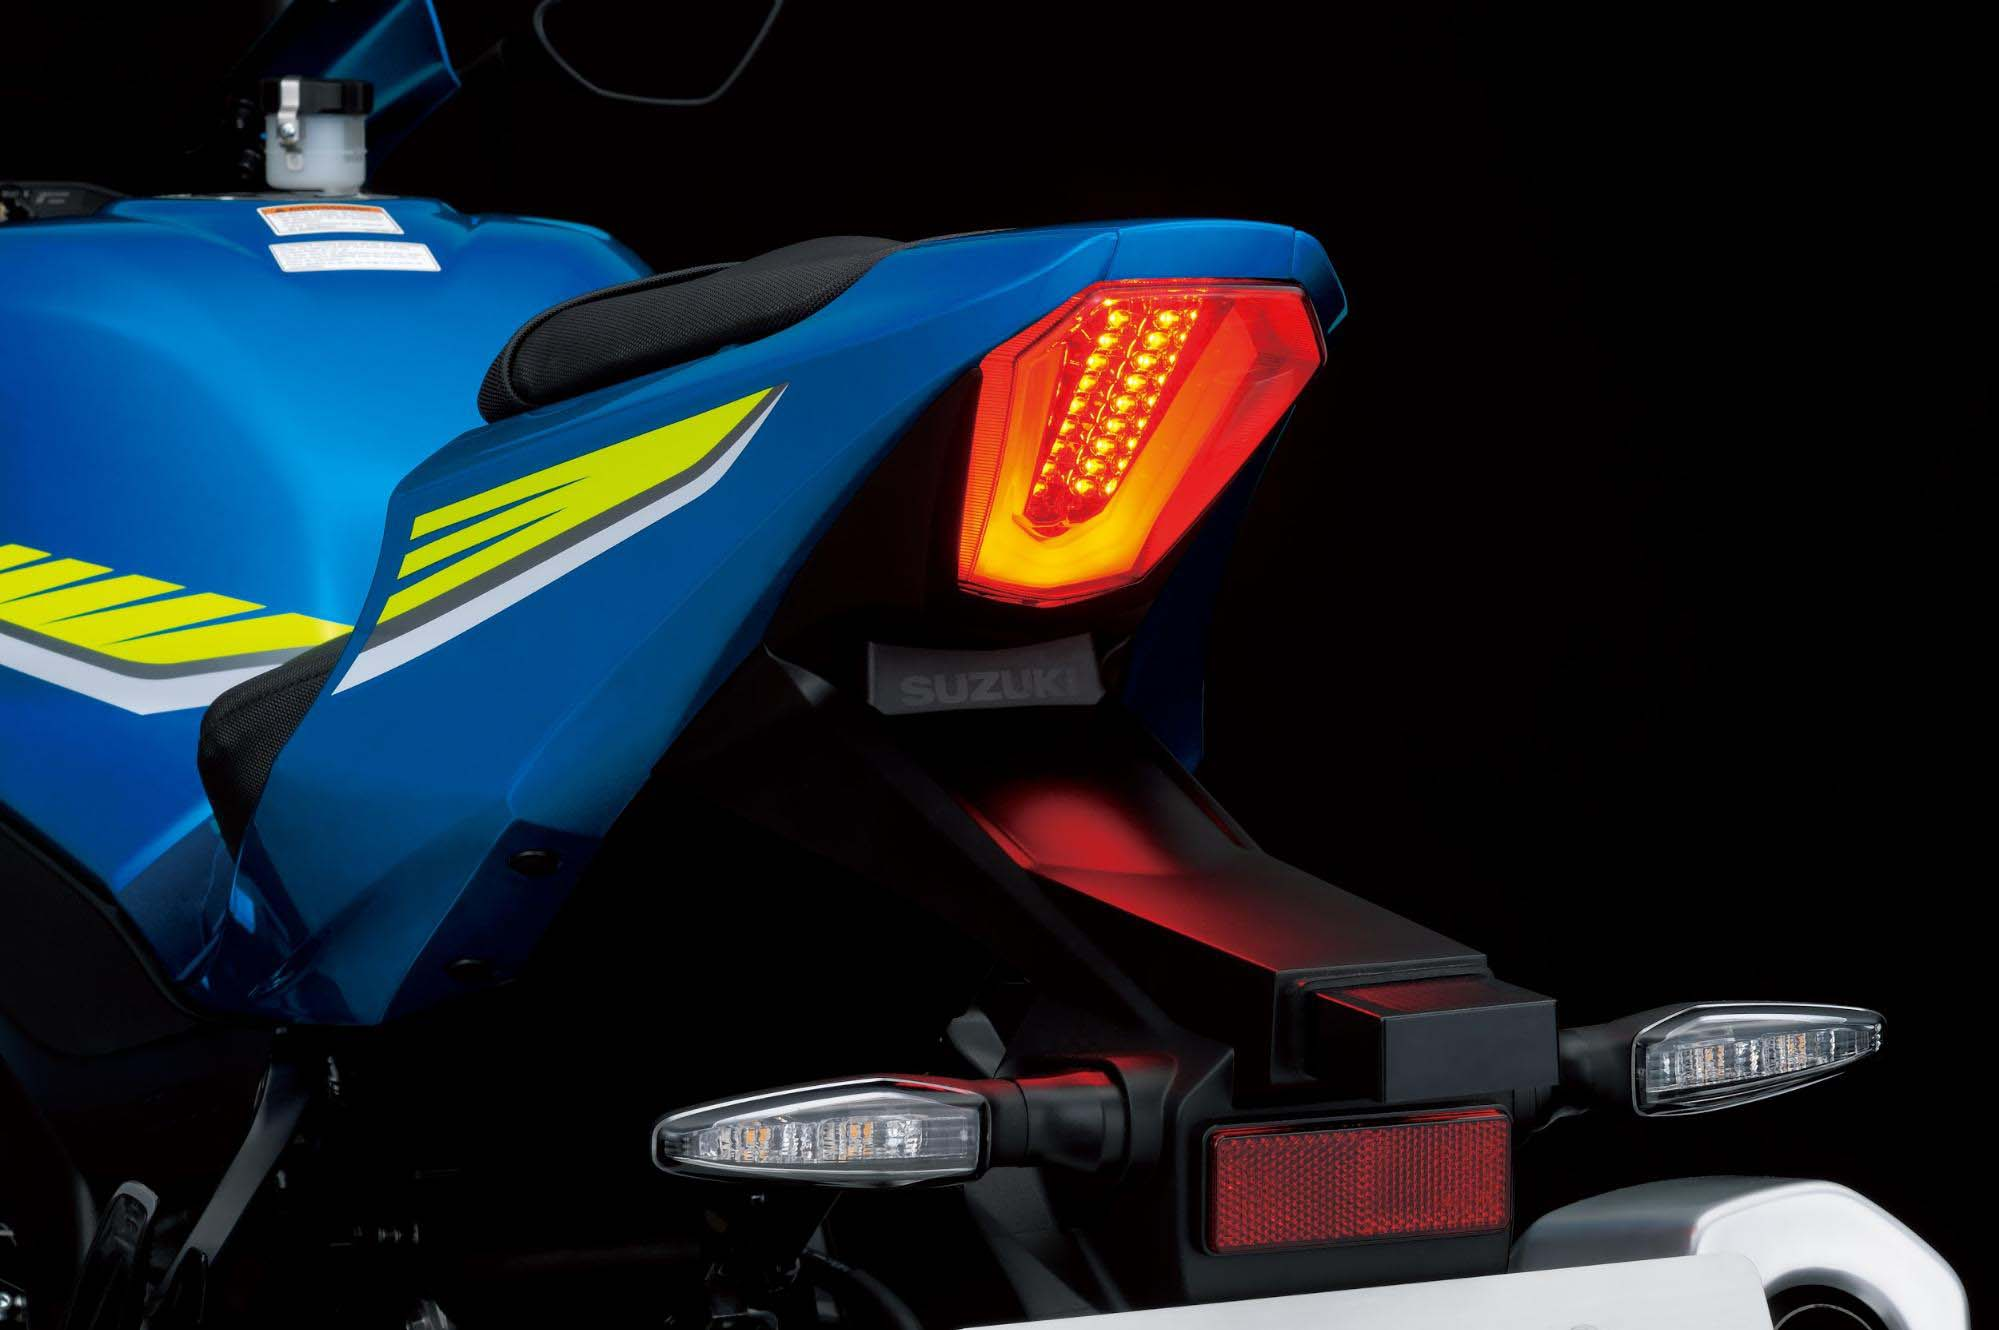 2017 Suzuki GSX-R1000 and GSX-R1000R Previews